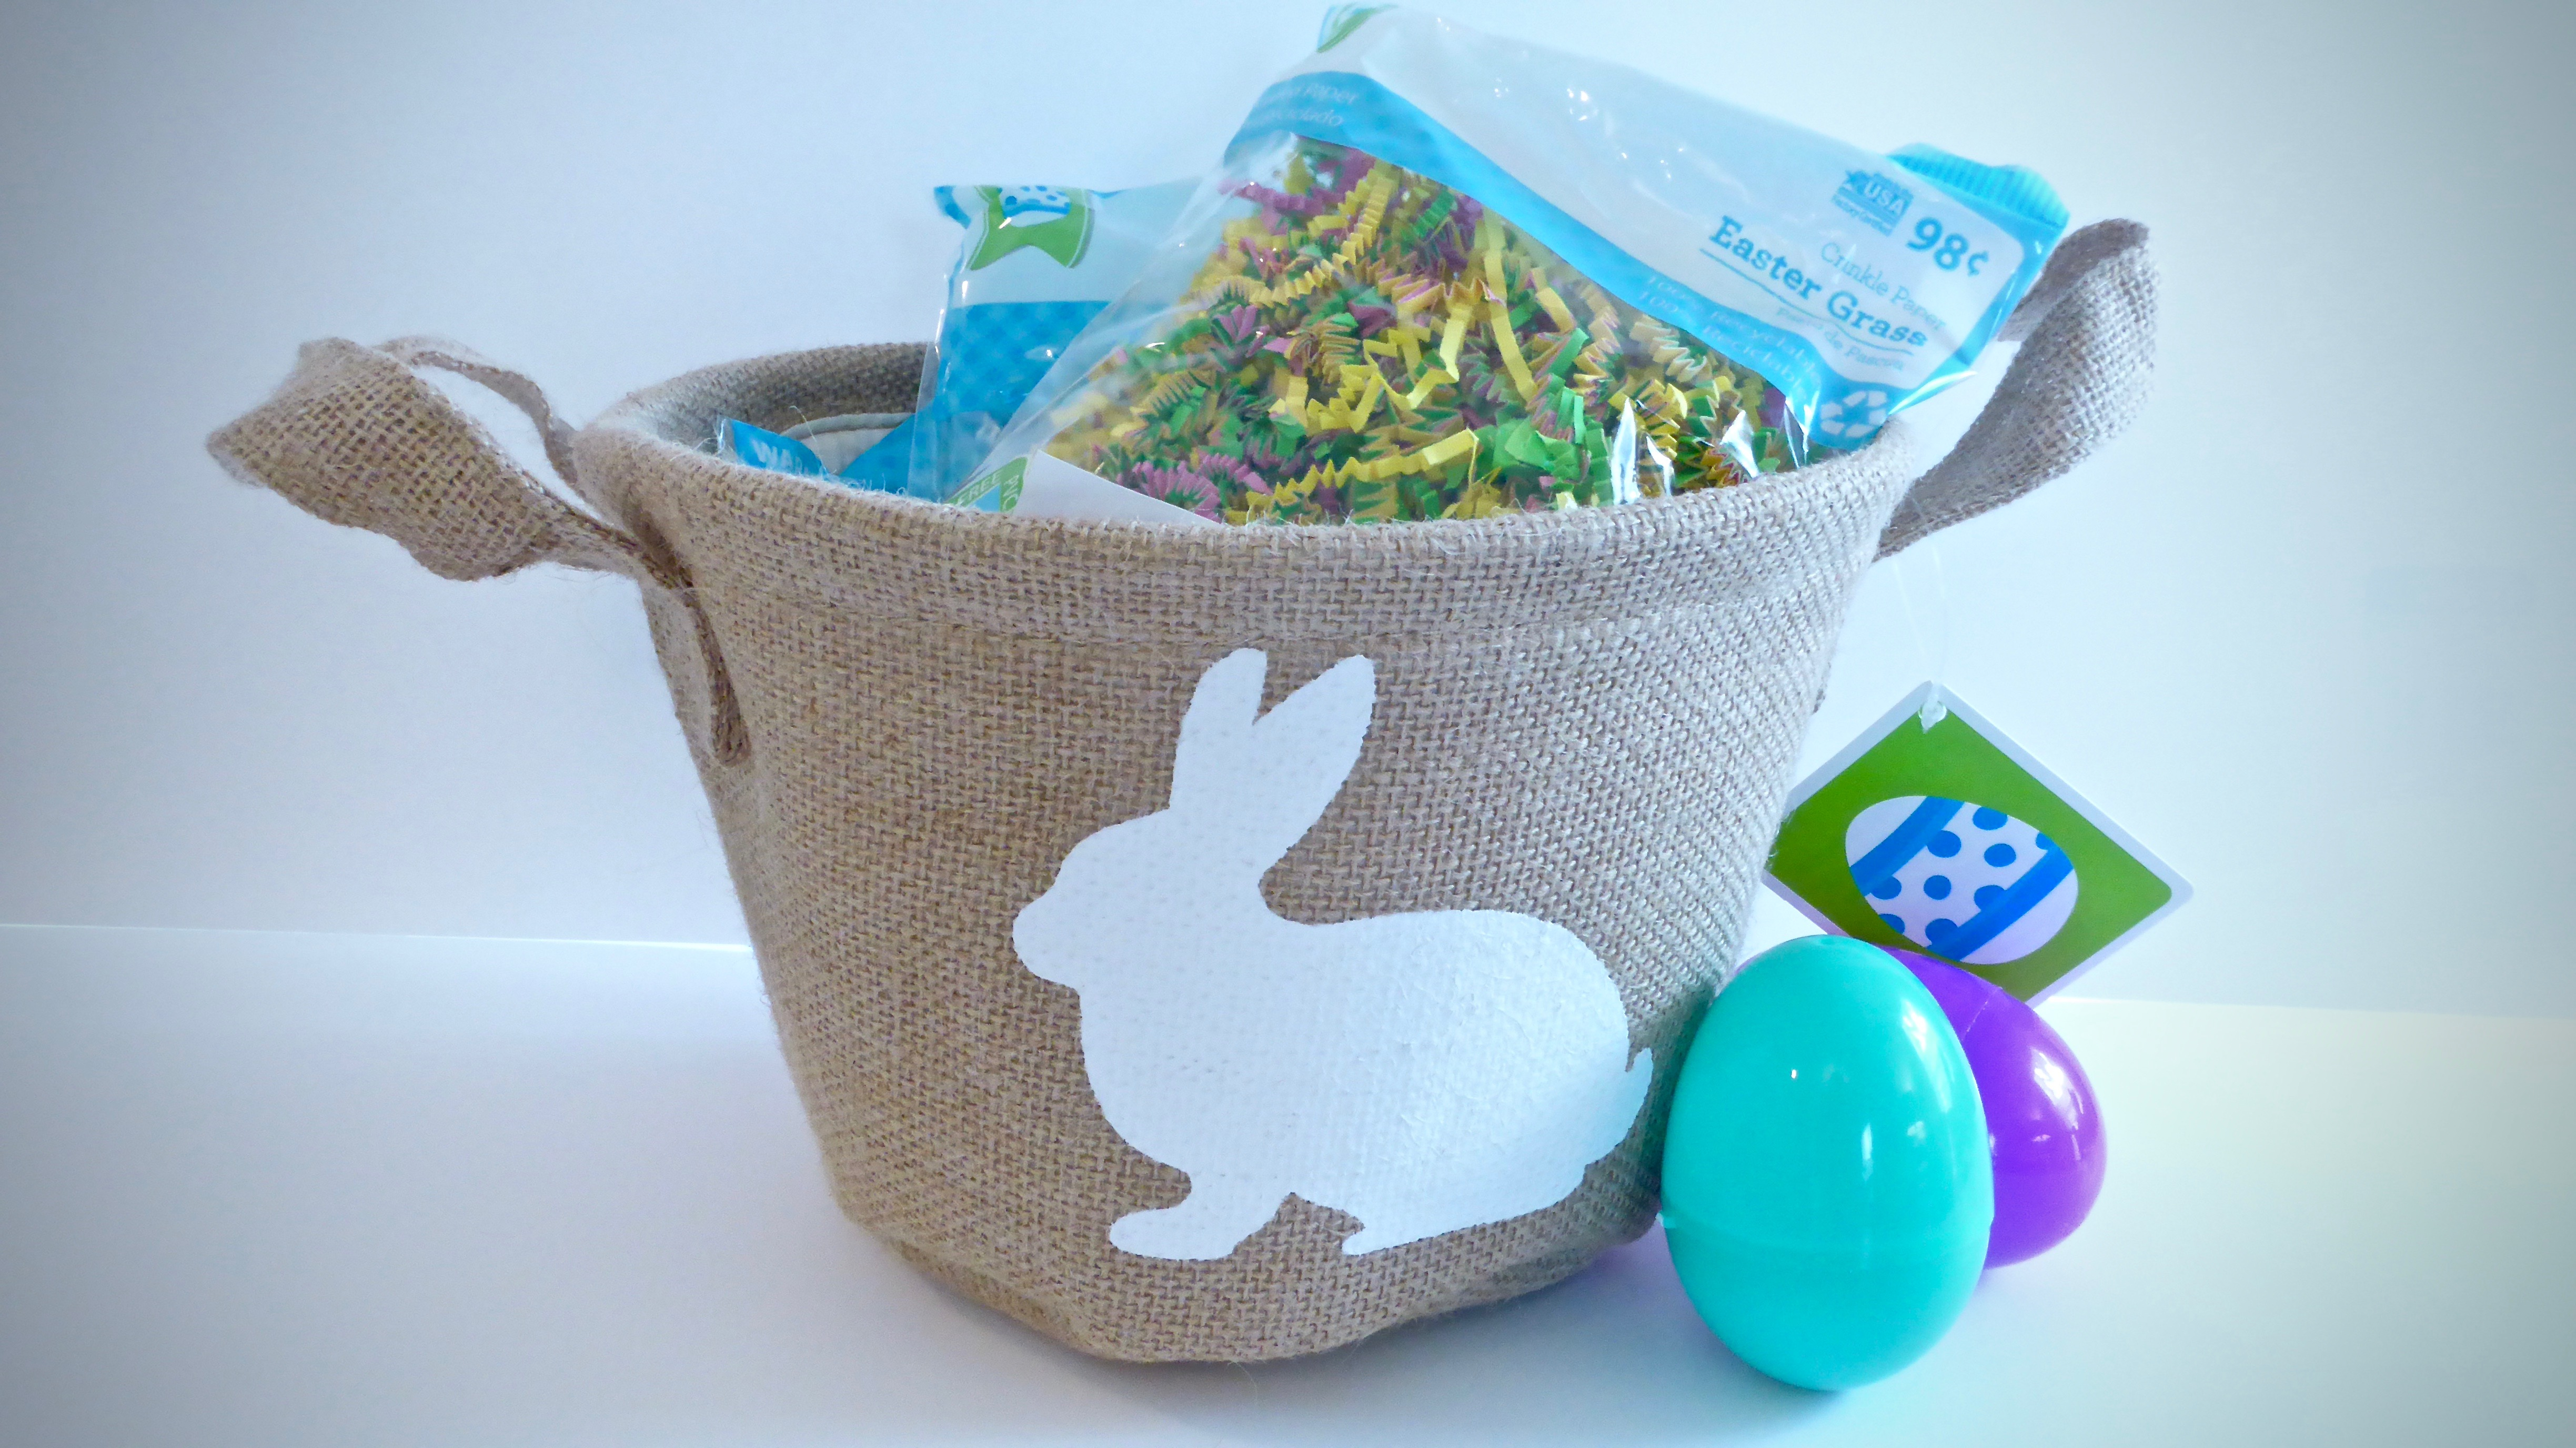 After-Easter clearance items - 10 Things To Do With After-Easter Clearance Items